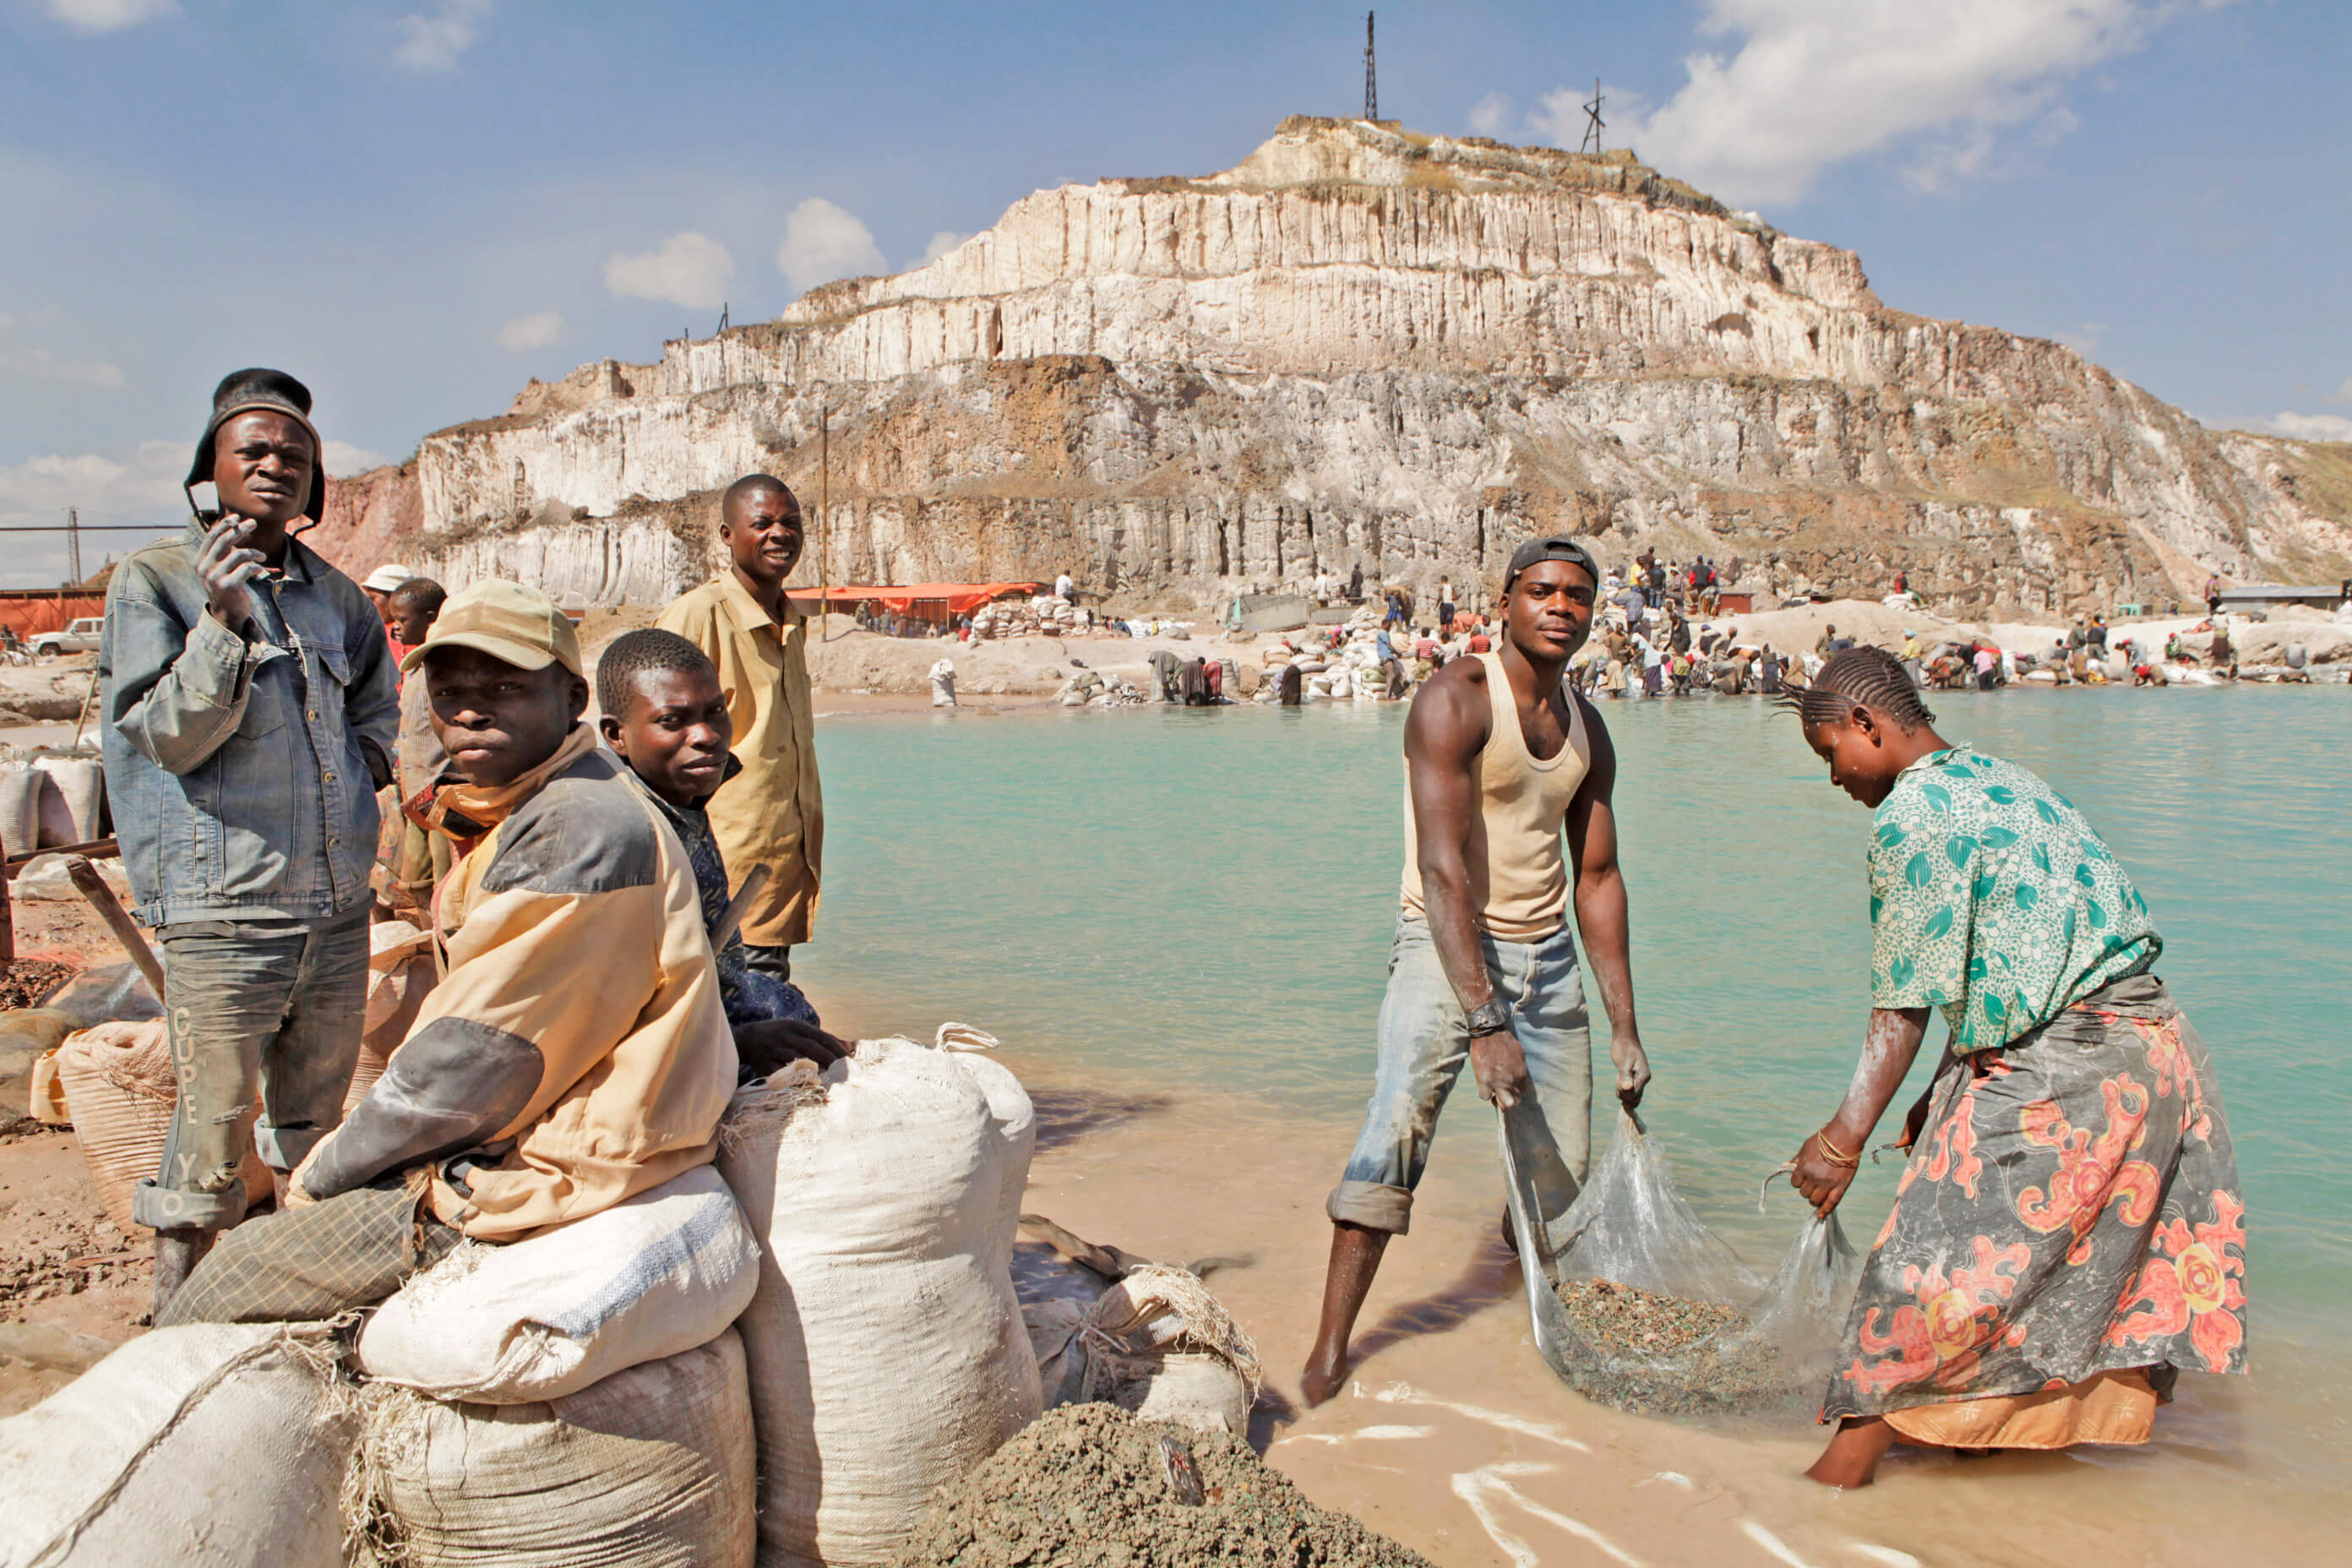 Artisinal Cobalt Miners in the DRC